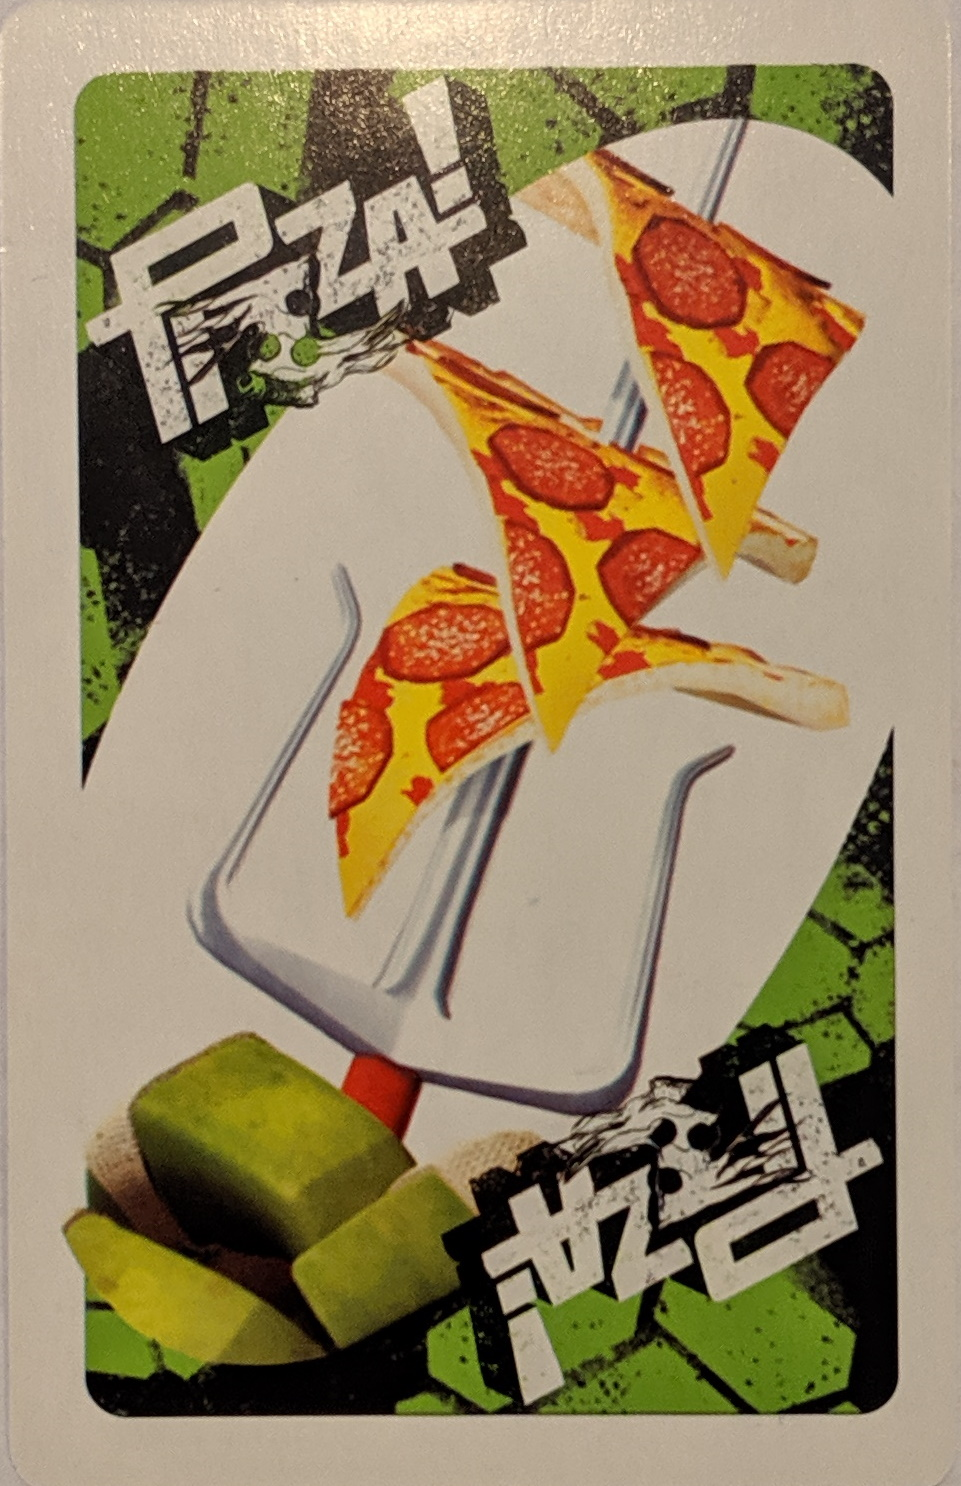 Teenage Mutant Ninja Turtles Uno (Pizza Card)